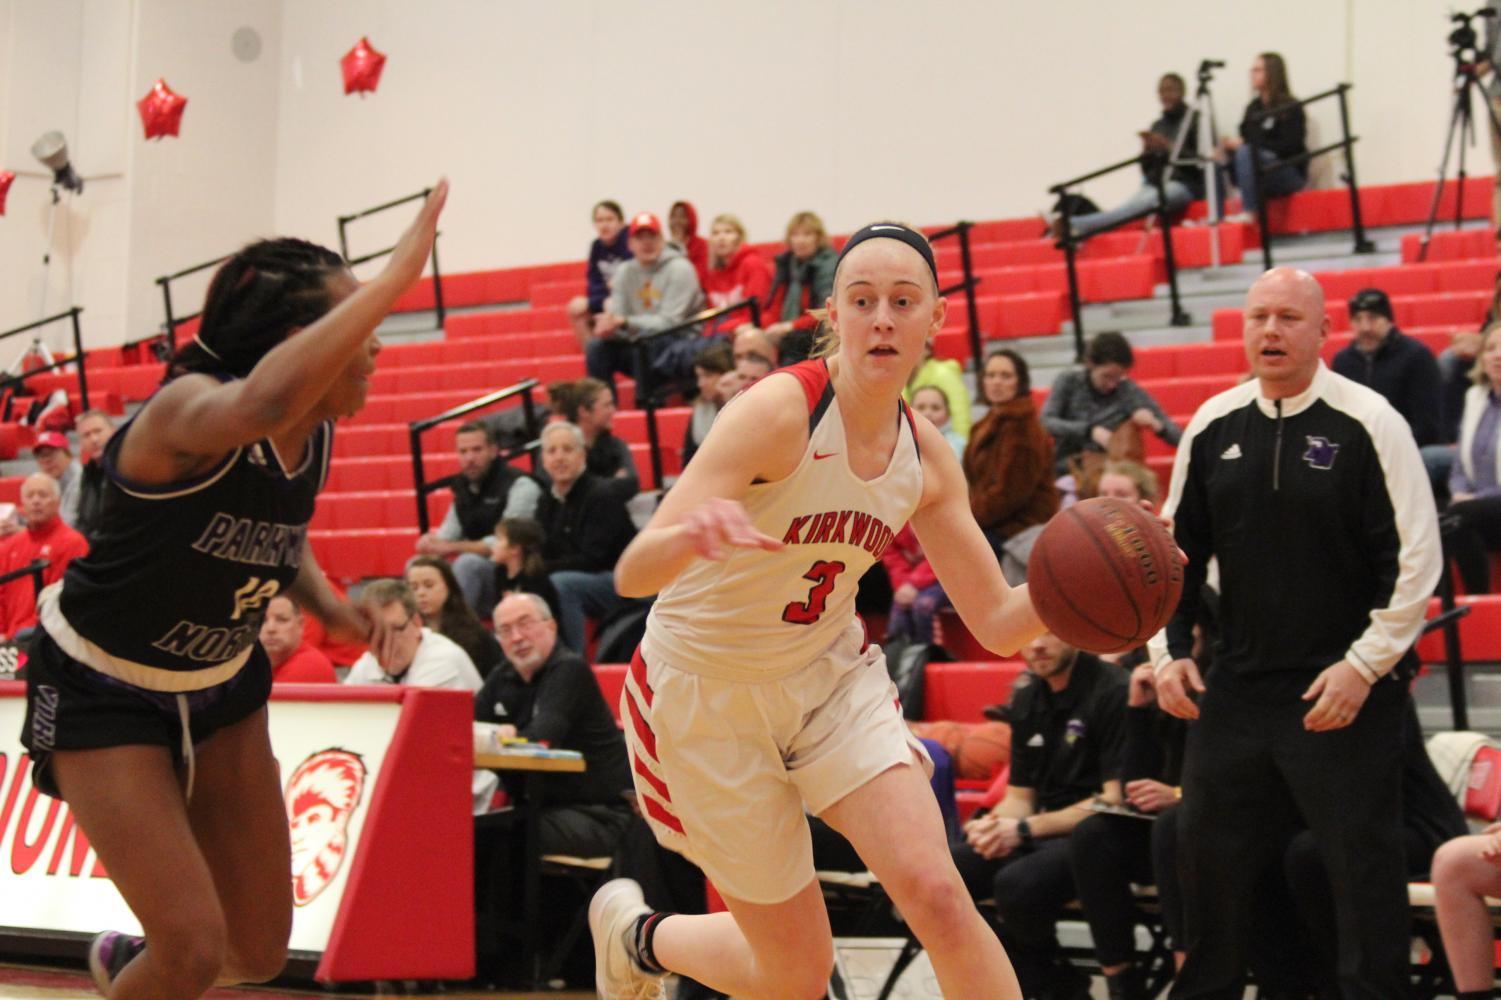 During+the+girls%E2%80%99+varsity+basketball+game%2C+Natalie+Bruns%2C+junior%2C+drives+past+the+defender+to+get+to+the+basket+Feb.+8.+%0A